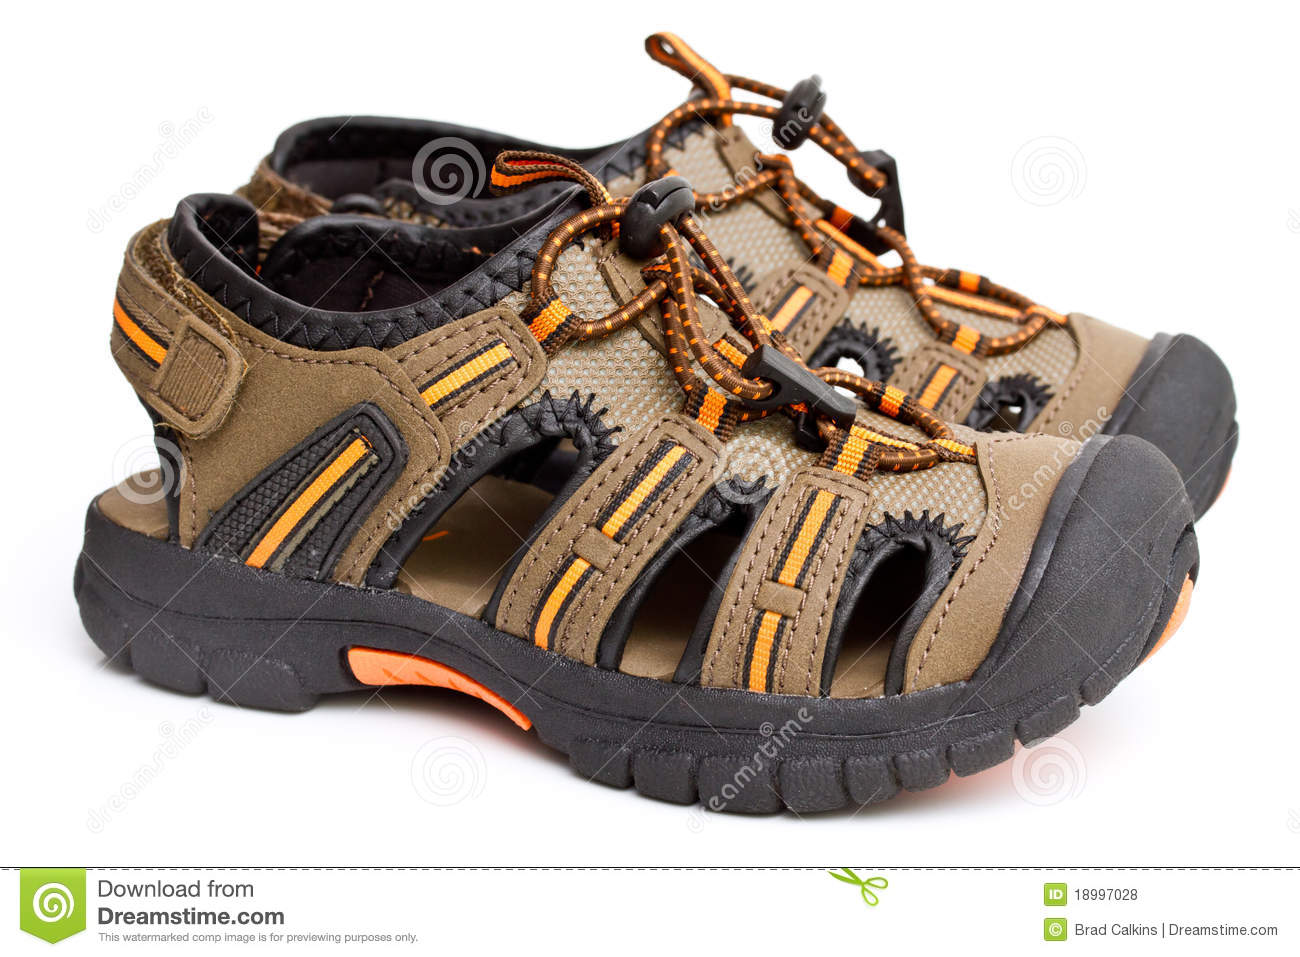 Boy's Sandals Royalty Free Stock Photos - Image: 18997028